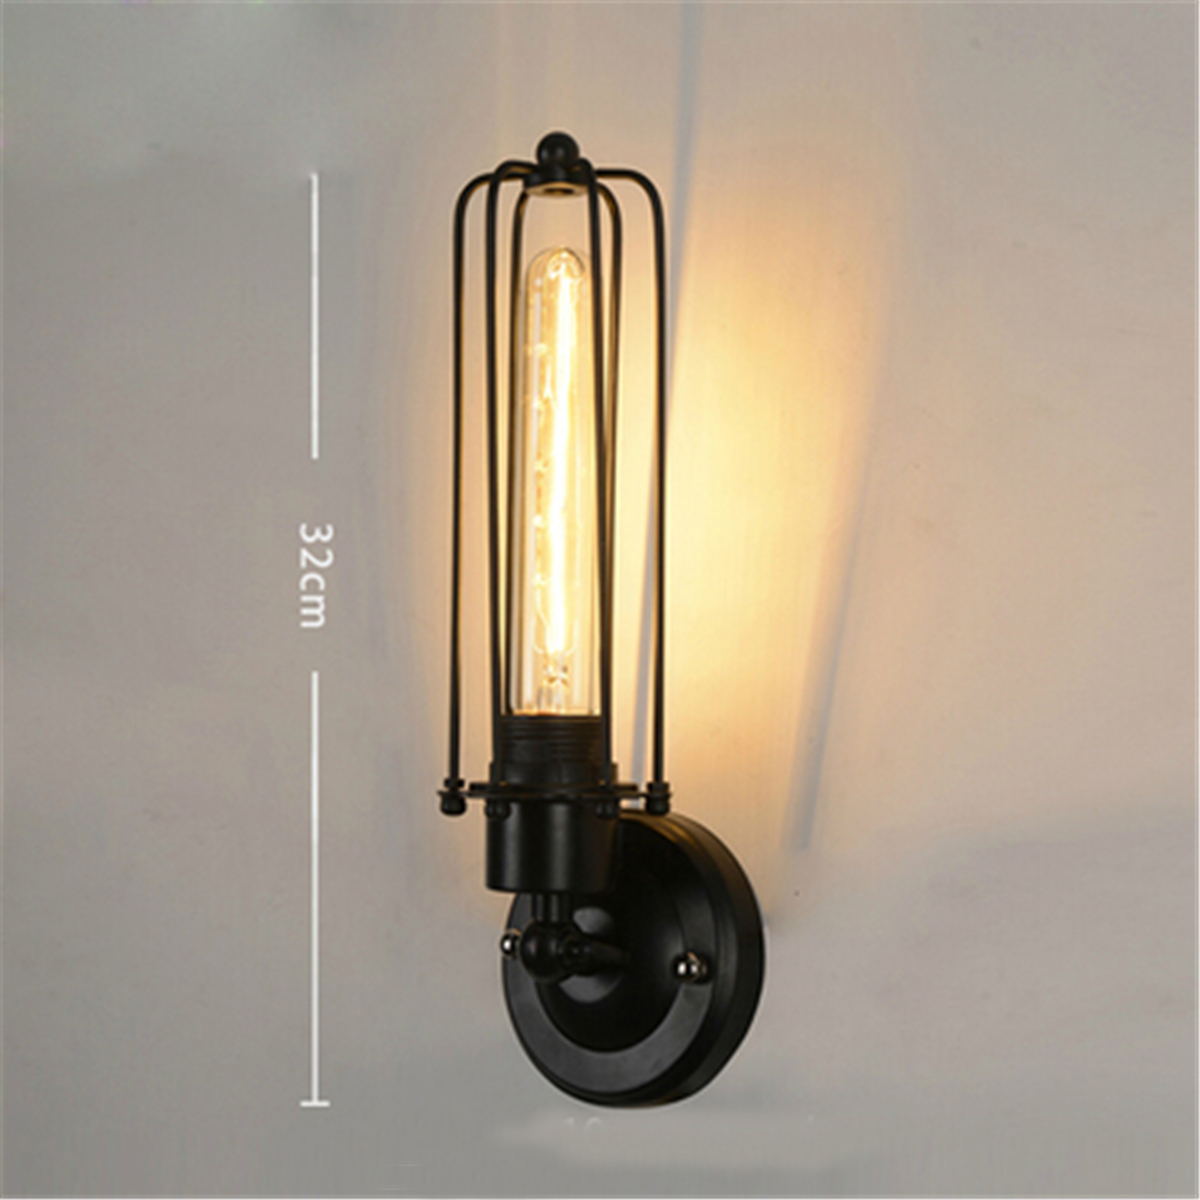 Vintage Industrial Retro Iron 1/2 Heads Wall Lamp Sconce Light ...